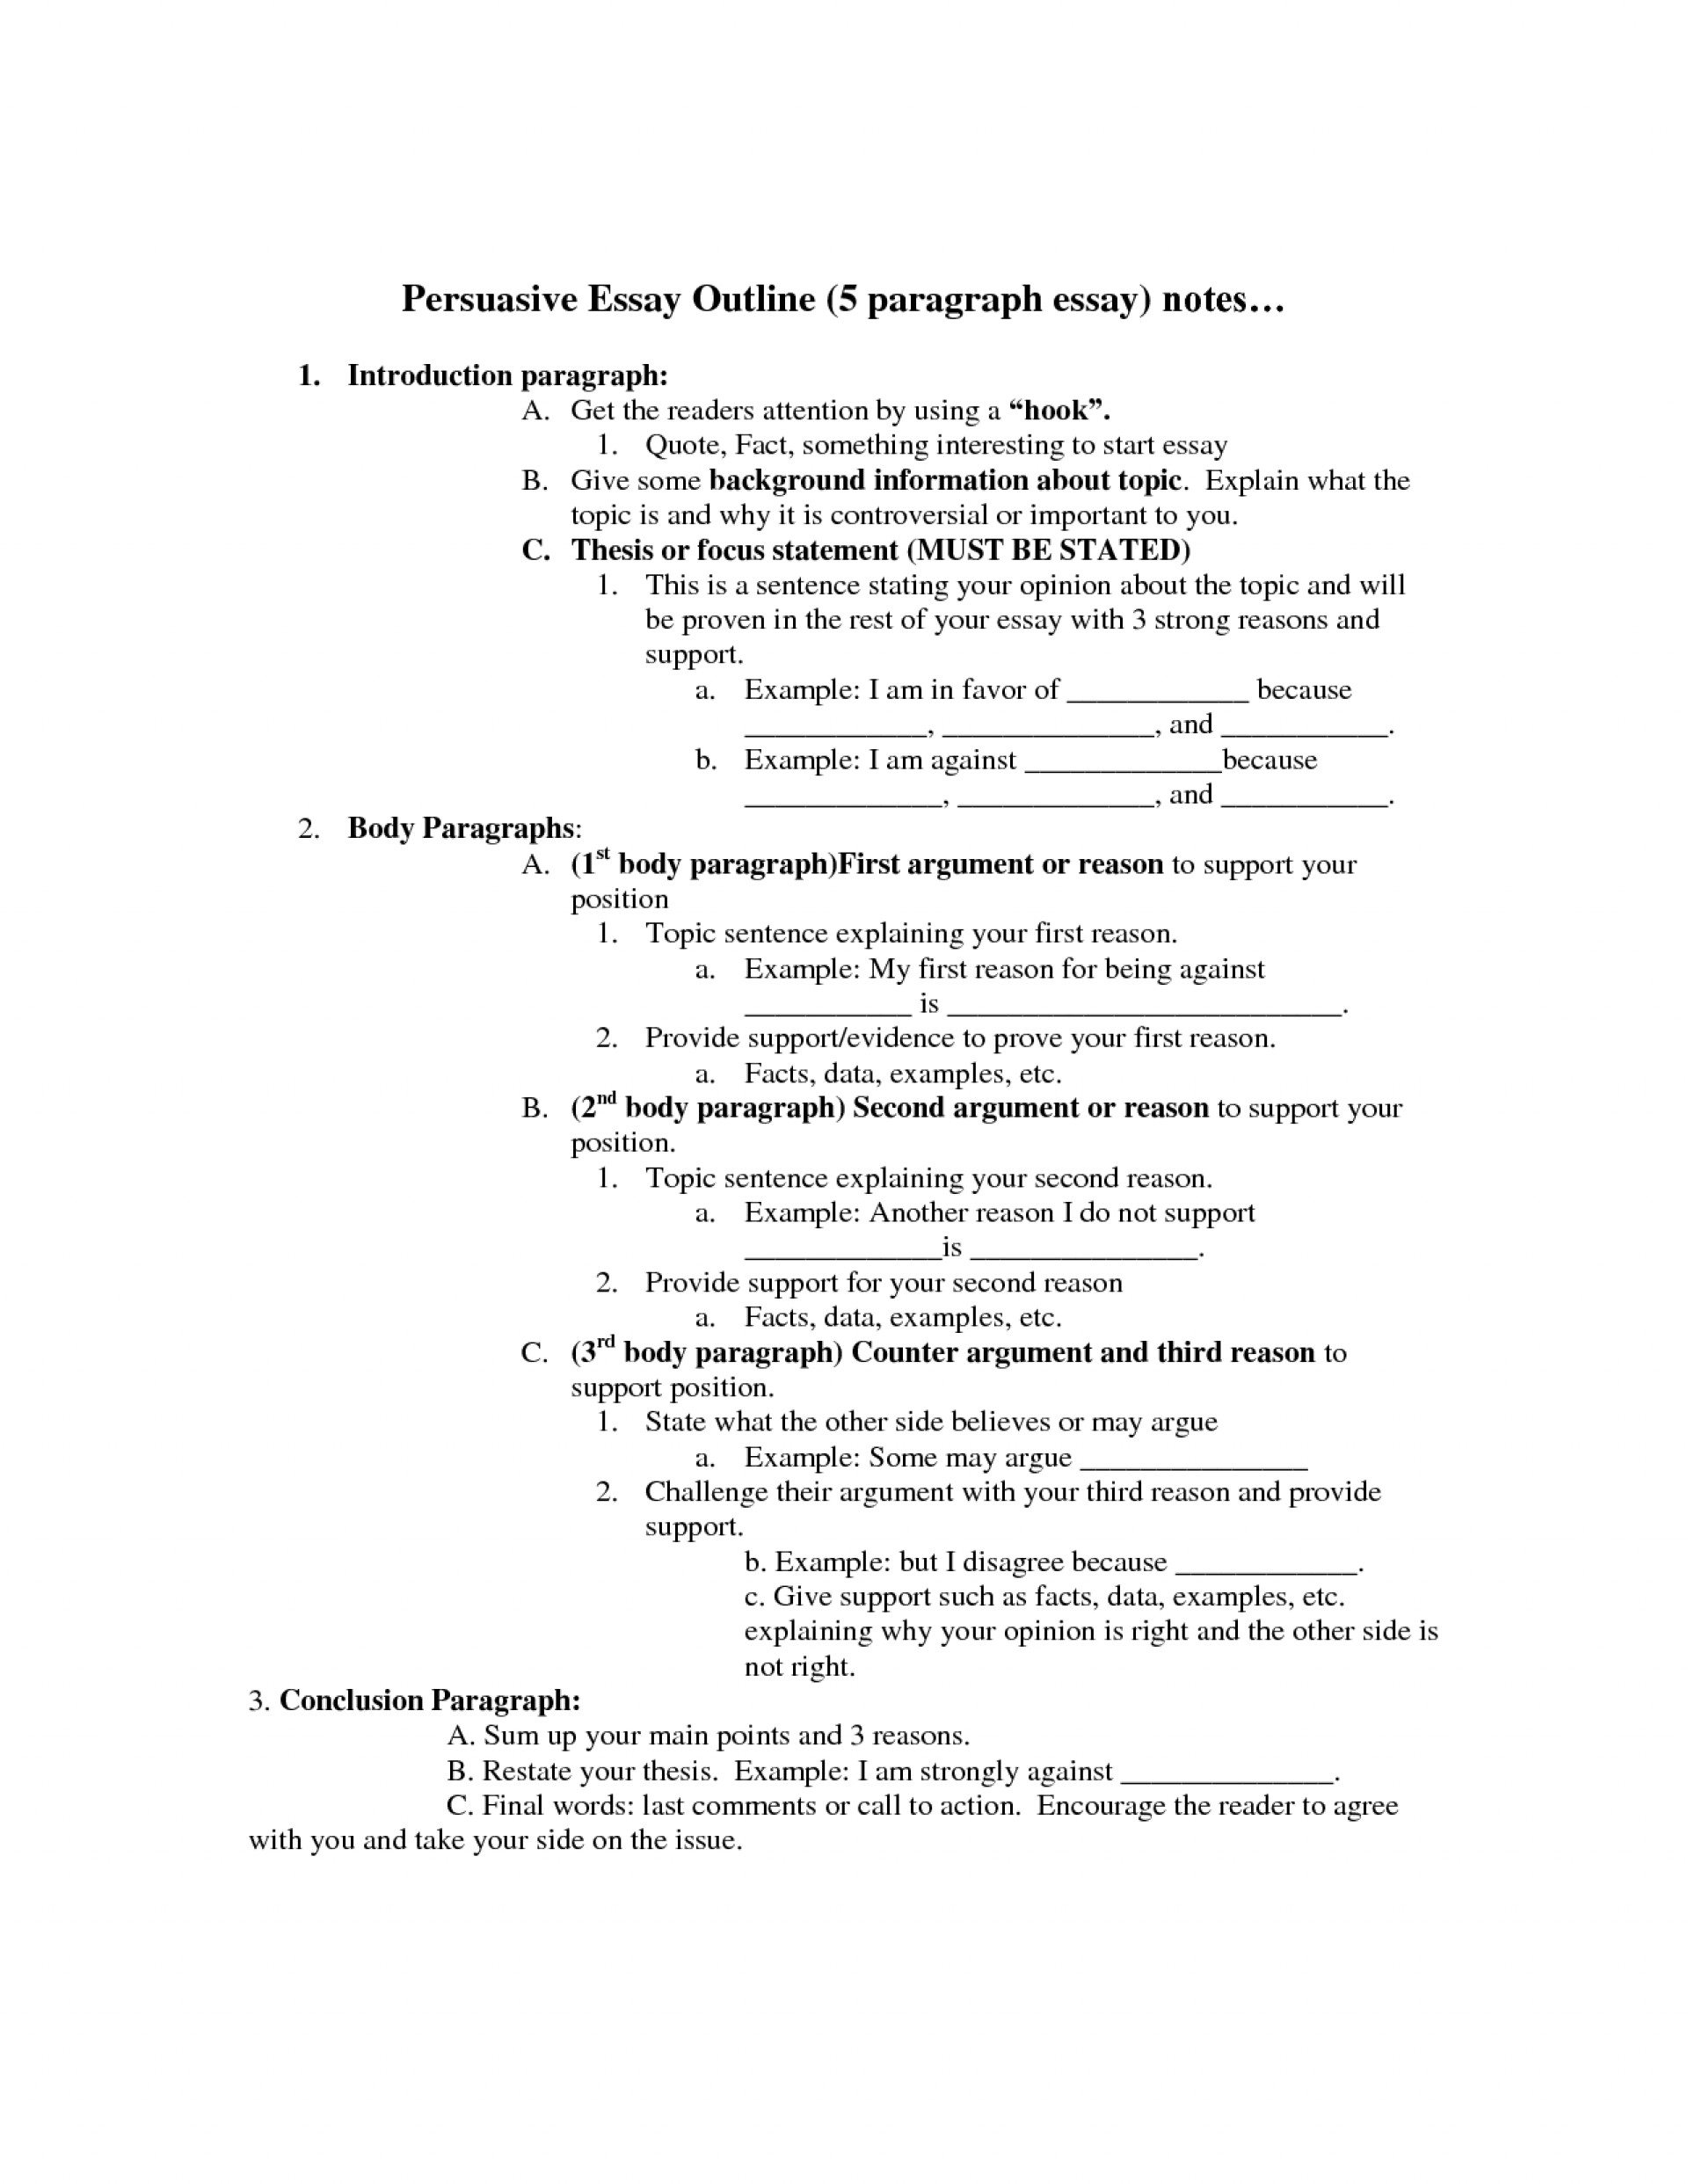 006 Persuasive Essay Outline Unbelievable Format Middle School Good Topics 5th Grade Pdf 1920